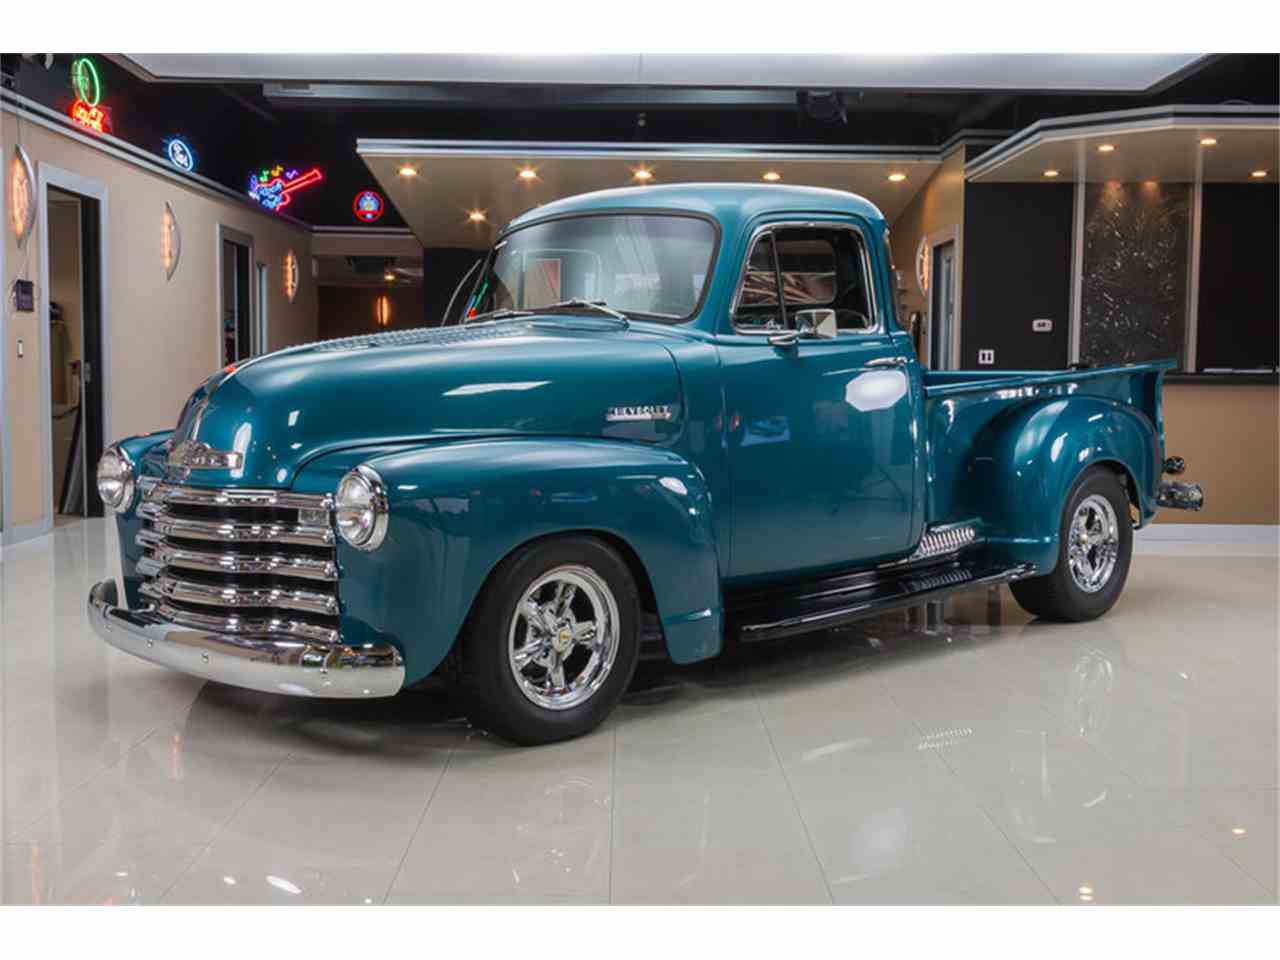 1952 chevrolet 3100 5 window pickup for sale classiccars for 1952 chevy pickup 5 window